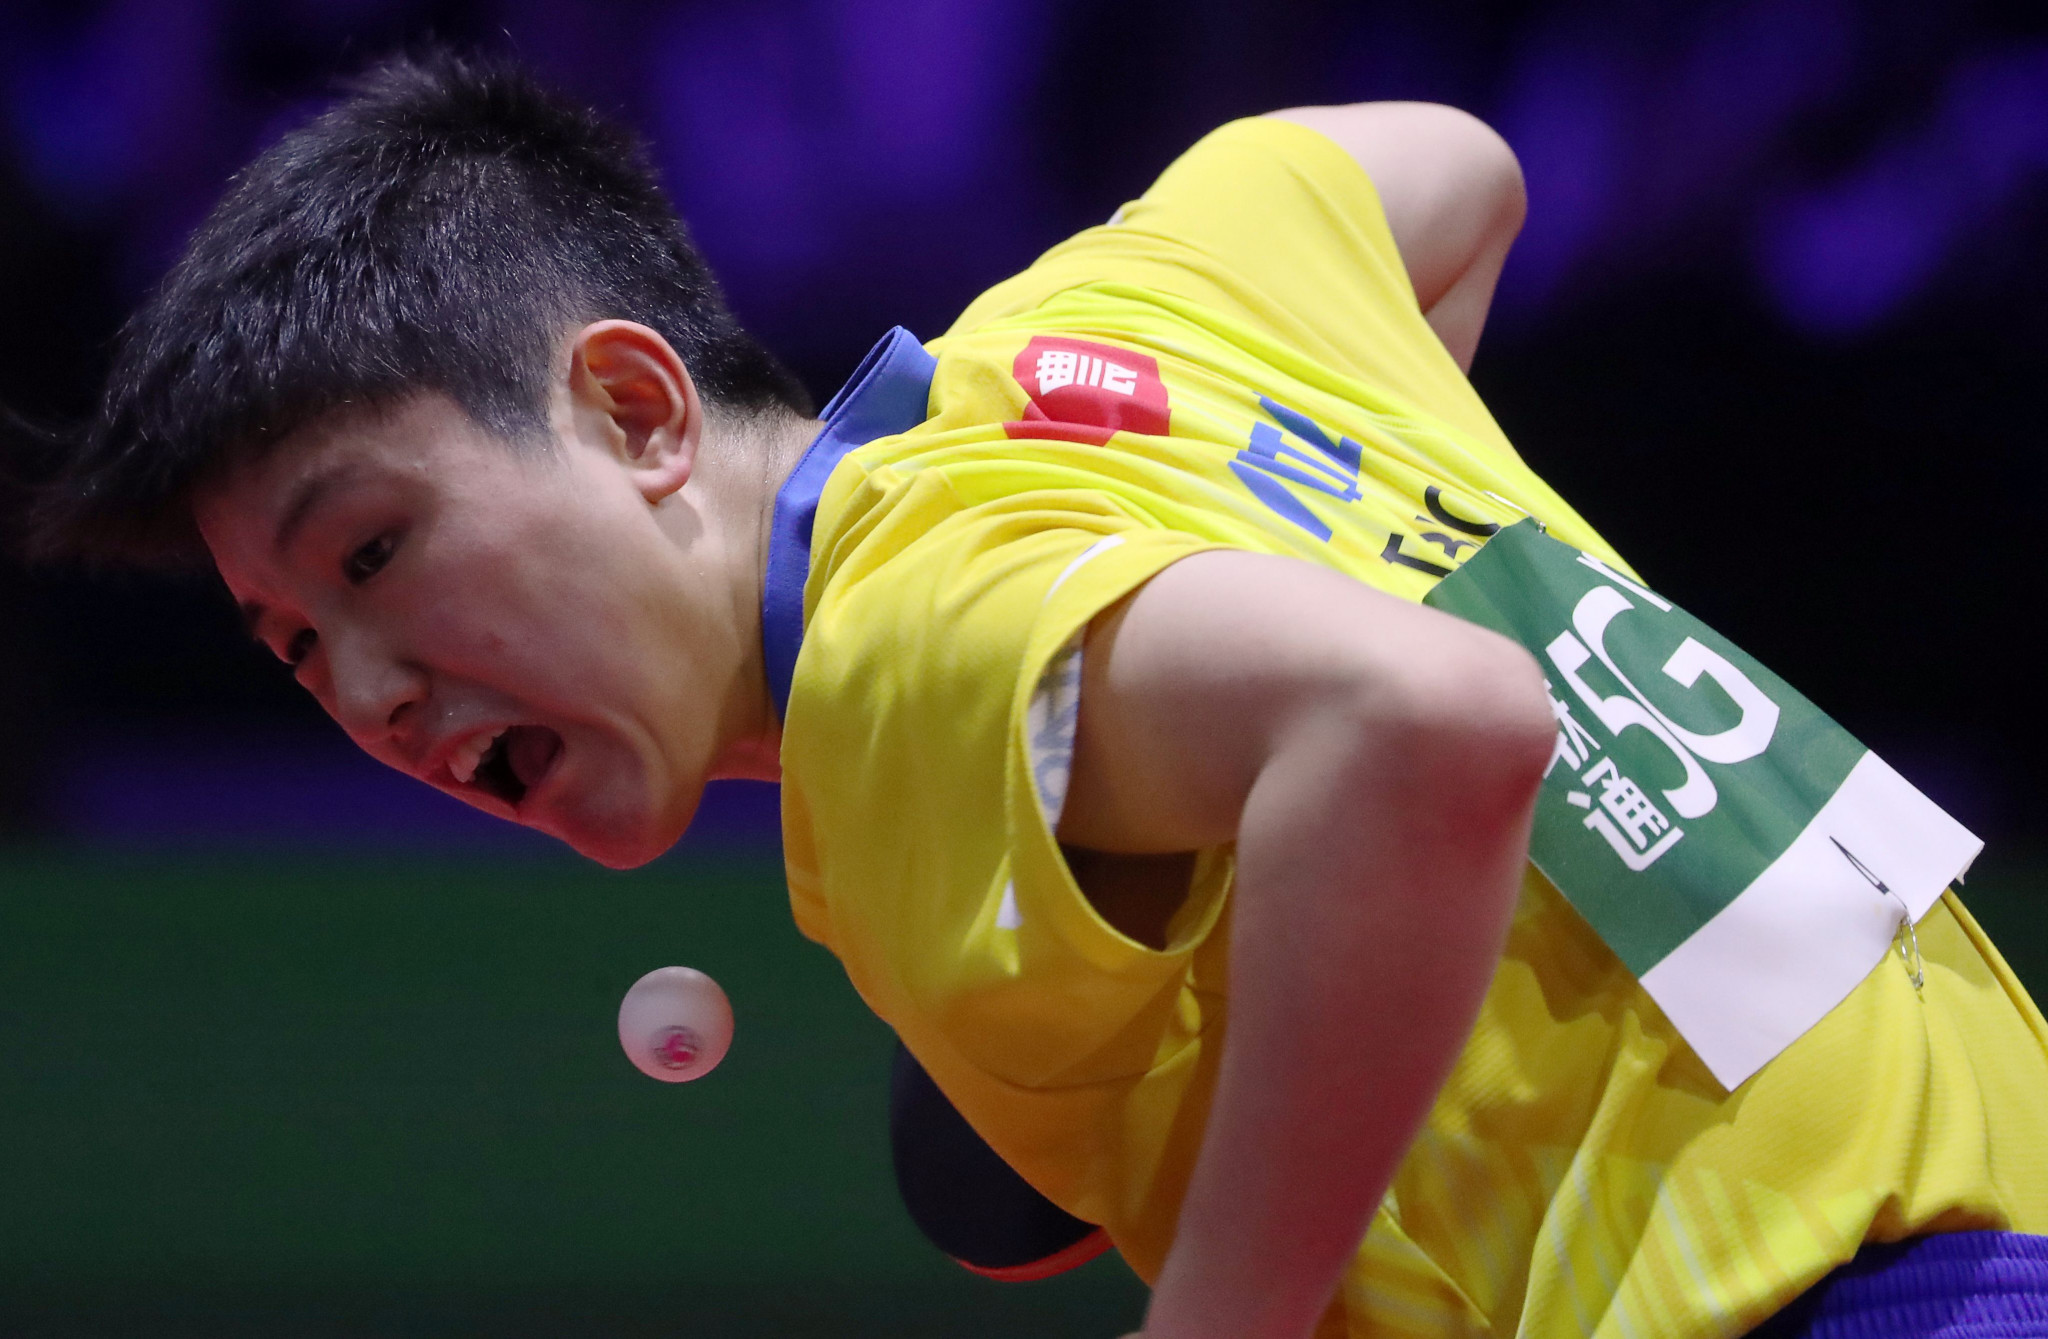 China's Zhu through to face top seed Harimoto in first round of ITTF Bulgaria Open